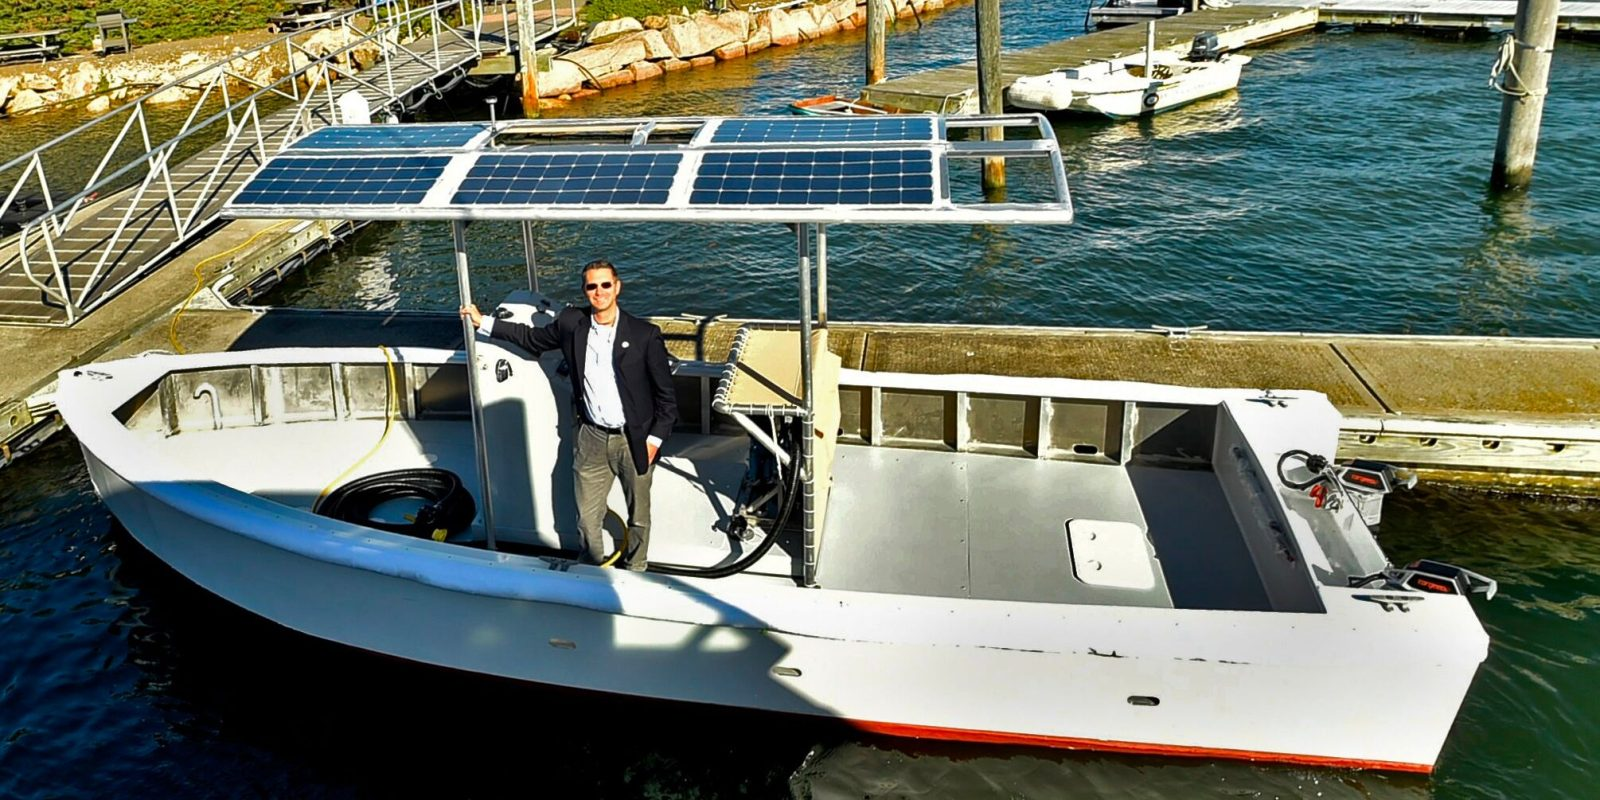 Solar Electric Fishing Boats - Year of Clean Water